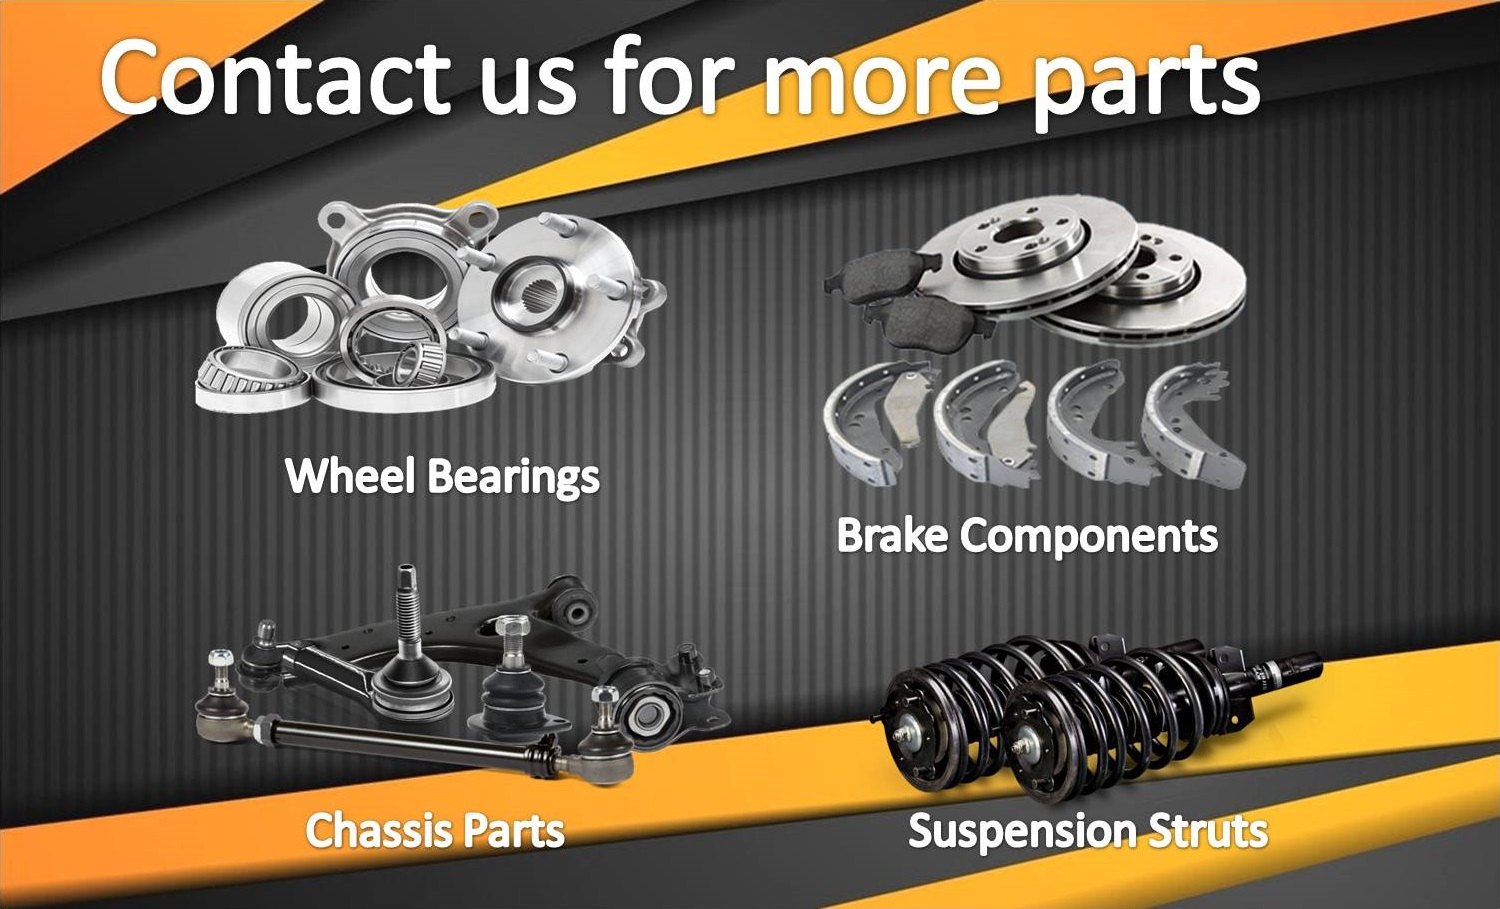 2016 for Ford C-Max Front /& Rear Brake Rotors and Pads 300mm Rotors